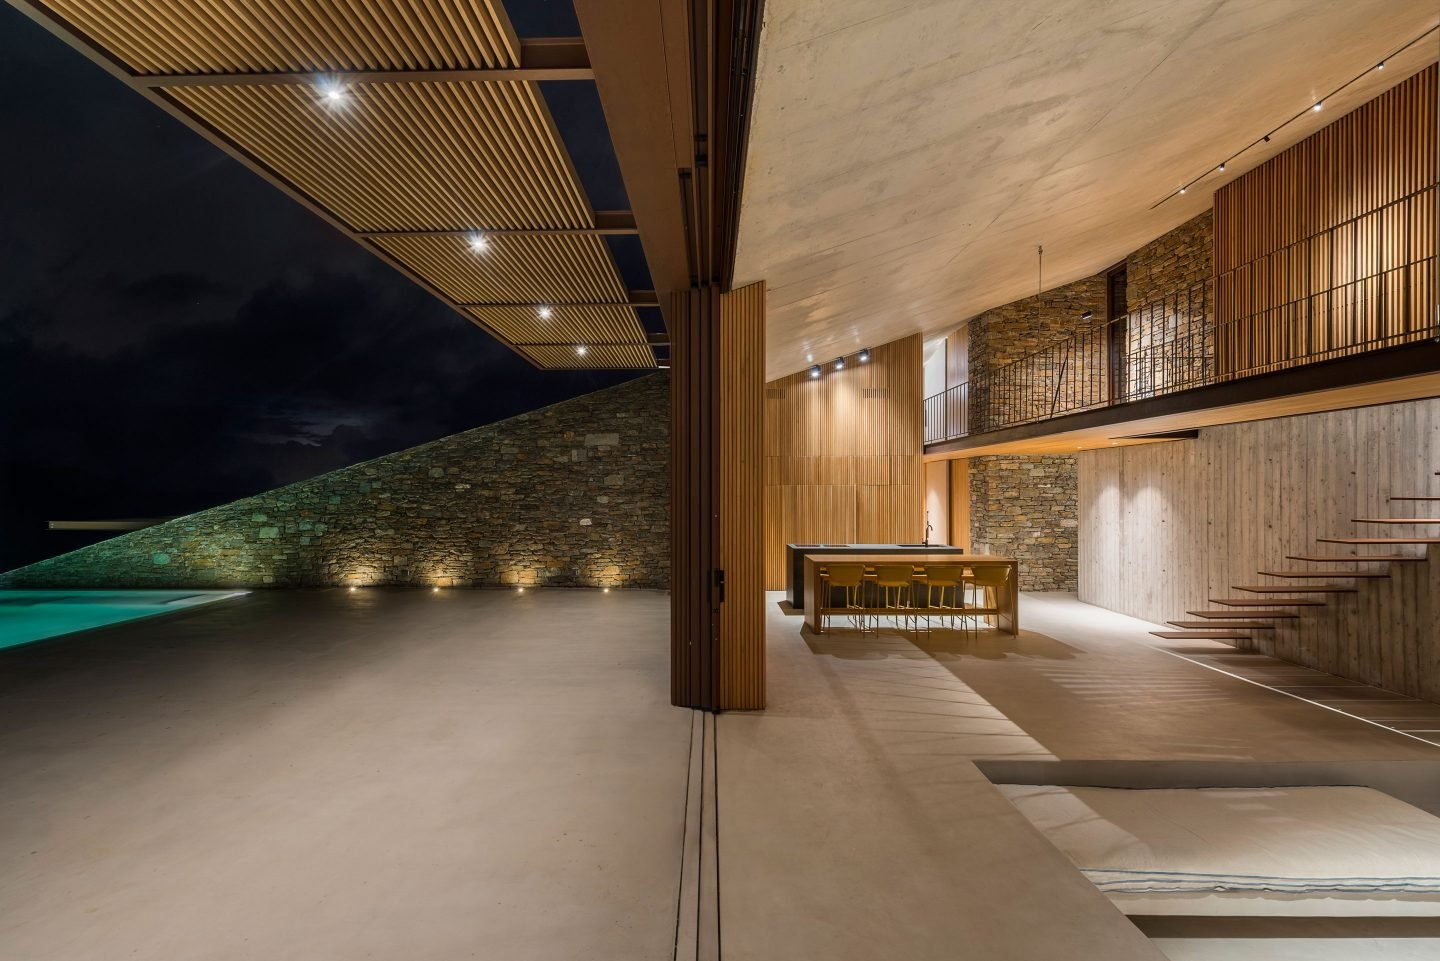 IGNANT-Architecture-Mold-NCaved-04